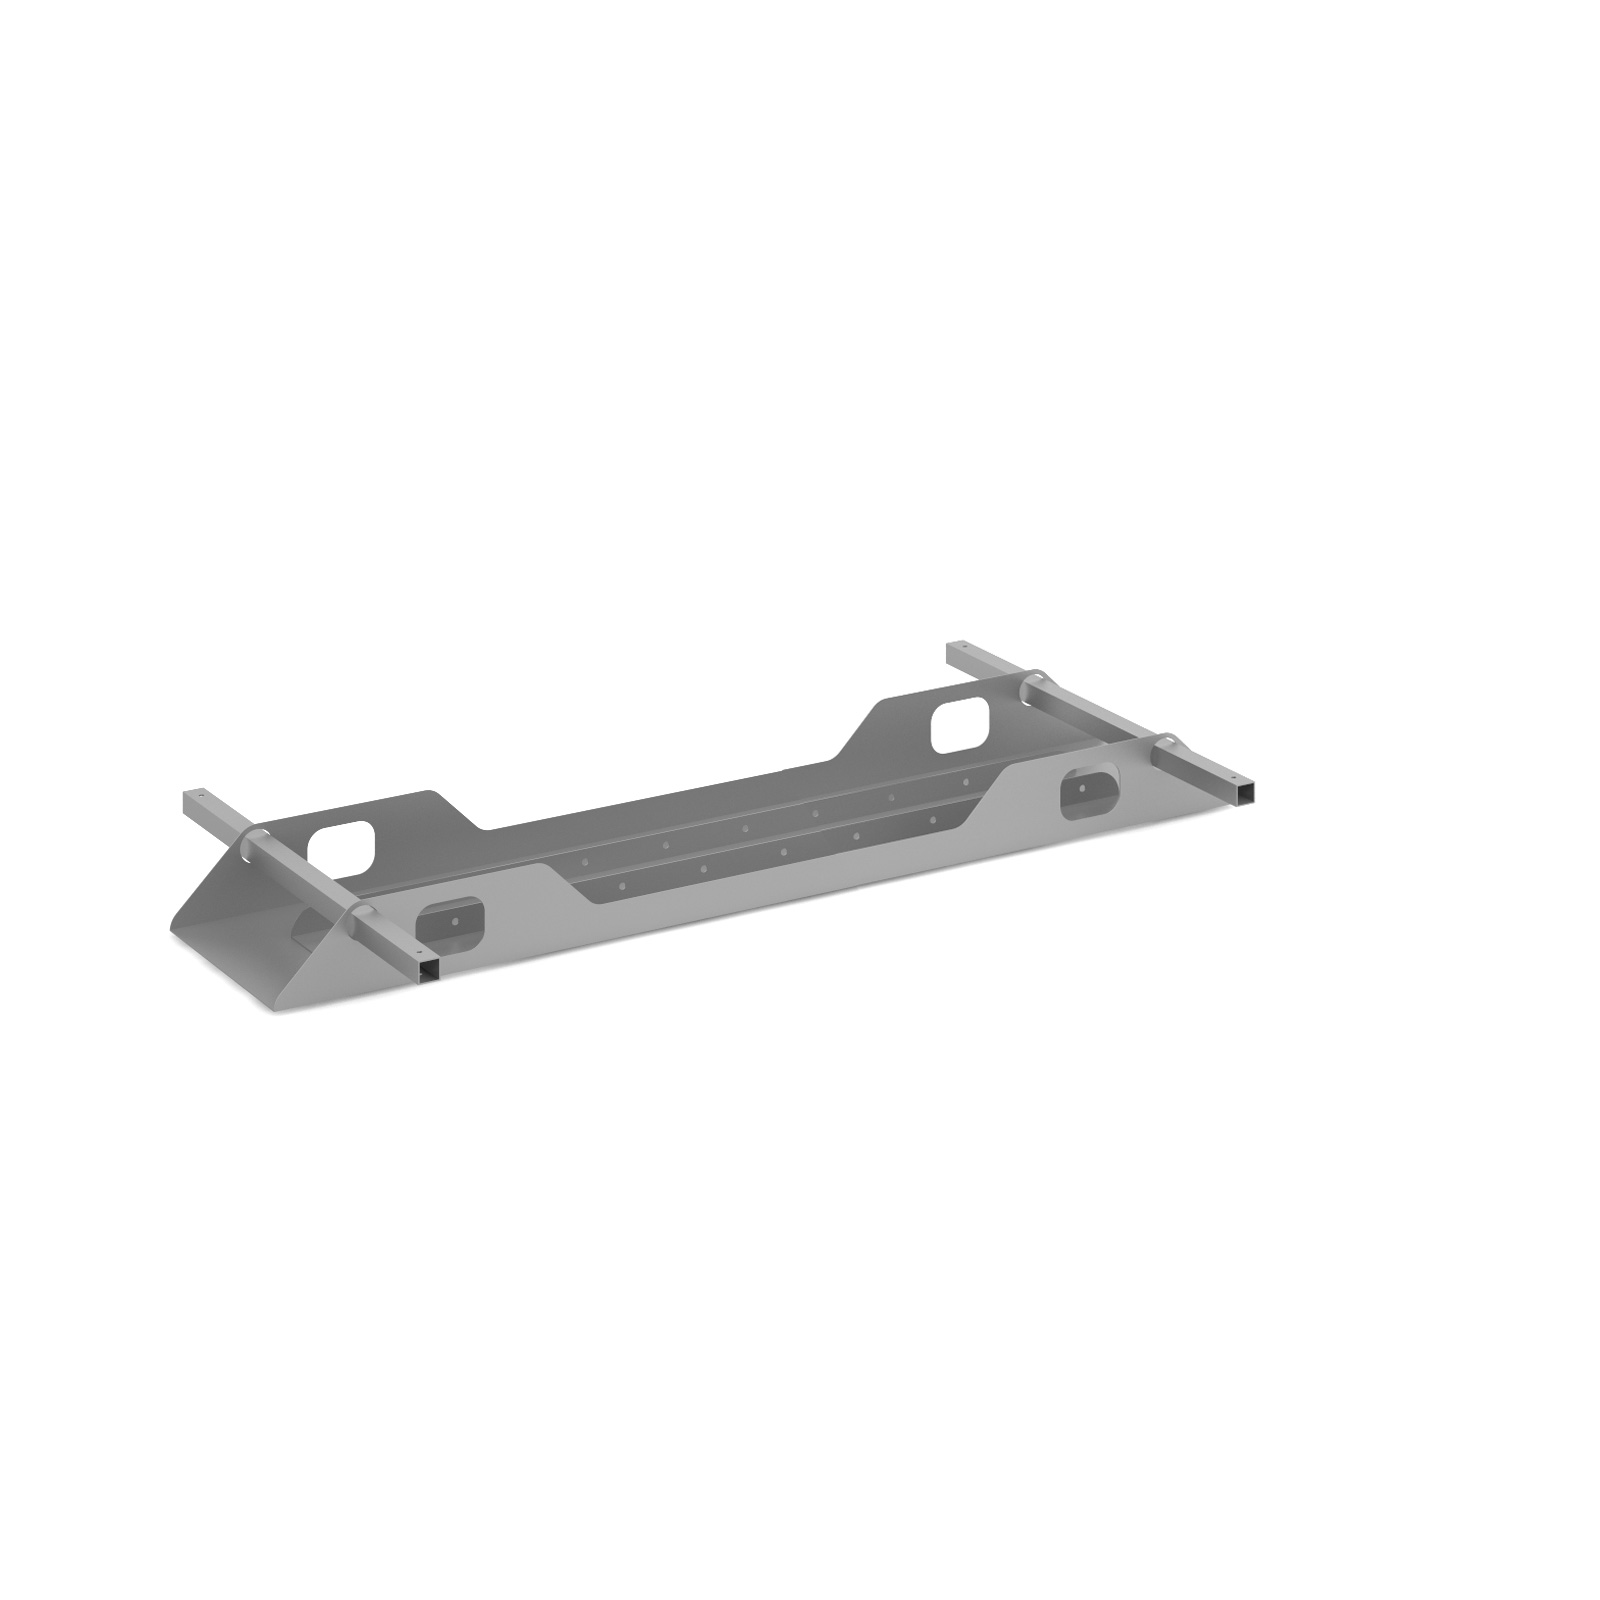 Connex Double Cable Tray 1400mm in silver